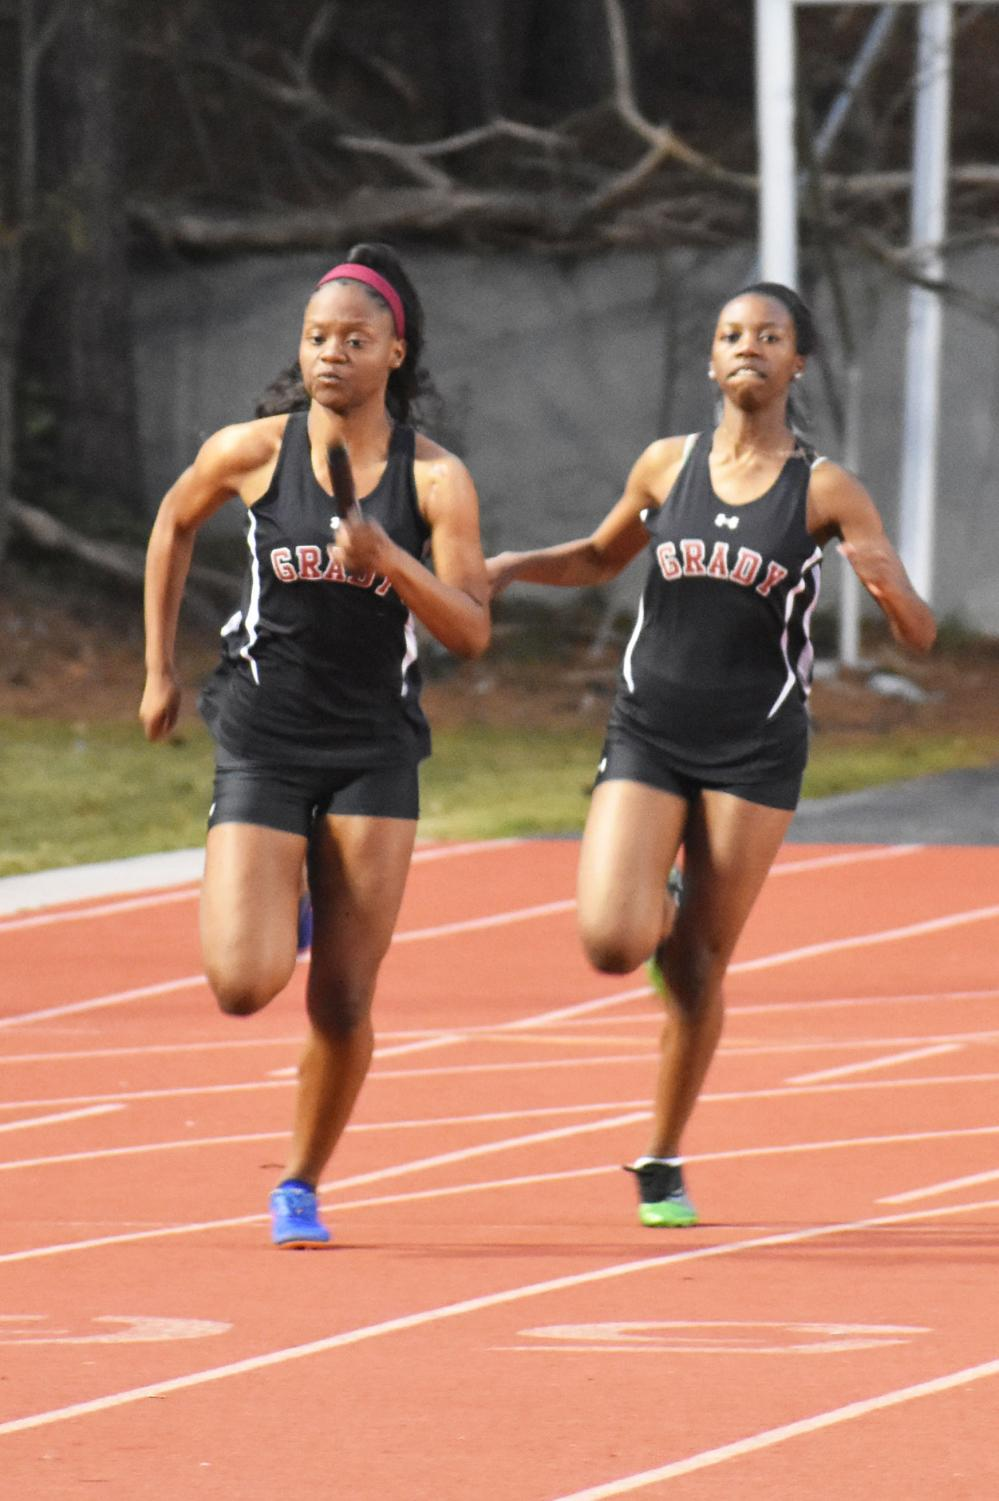 """Sophomore and captain Ameah Richardson receives the baton from sophomore Kendall Jones in the 4x100m relay  at the Grady Opener on Feb. 26. """"It felt really good to be named captain this year, and I really hope that I can meet the expectations of the team and bring us together more as a family than a team,"""" Richardson said."""